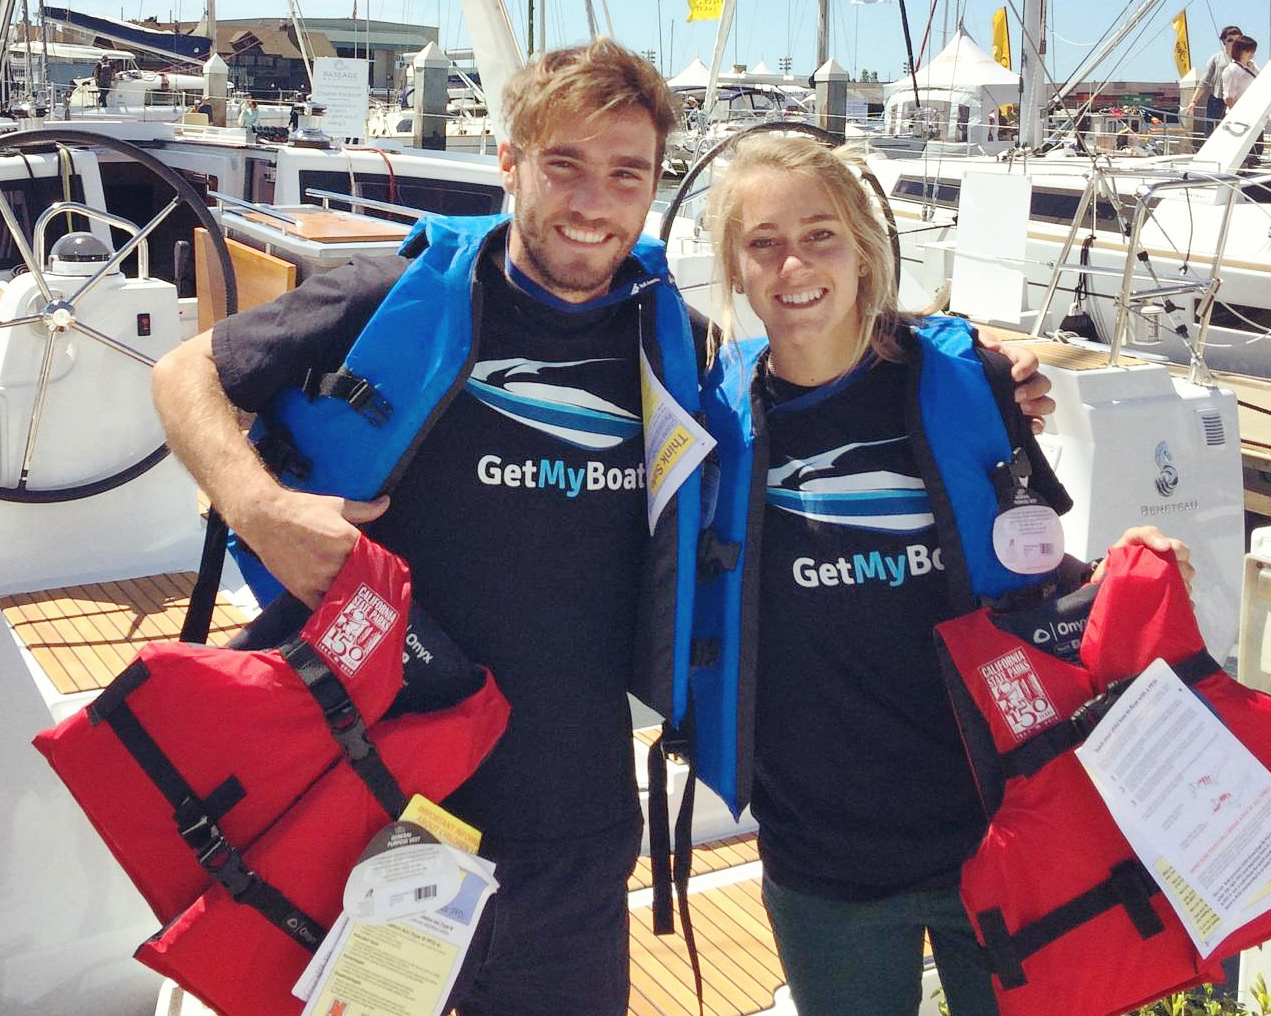 GetMyBoat hosts life jacket exchange at Strictly Sail Pacific